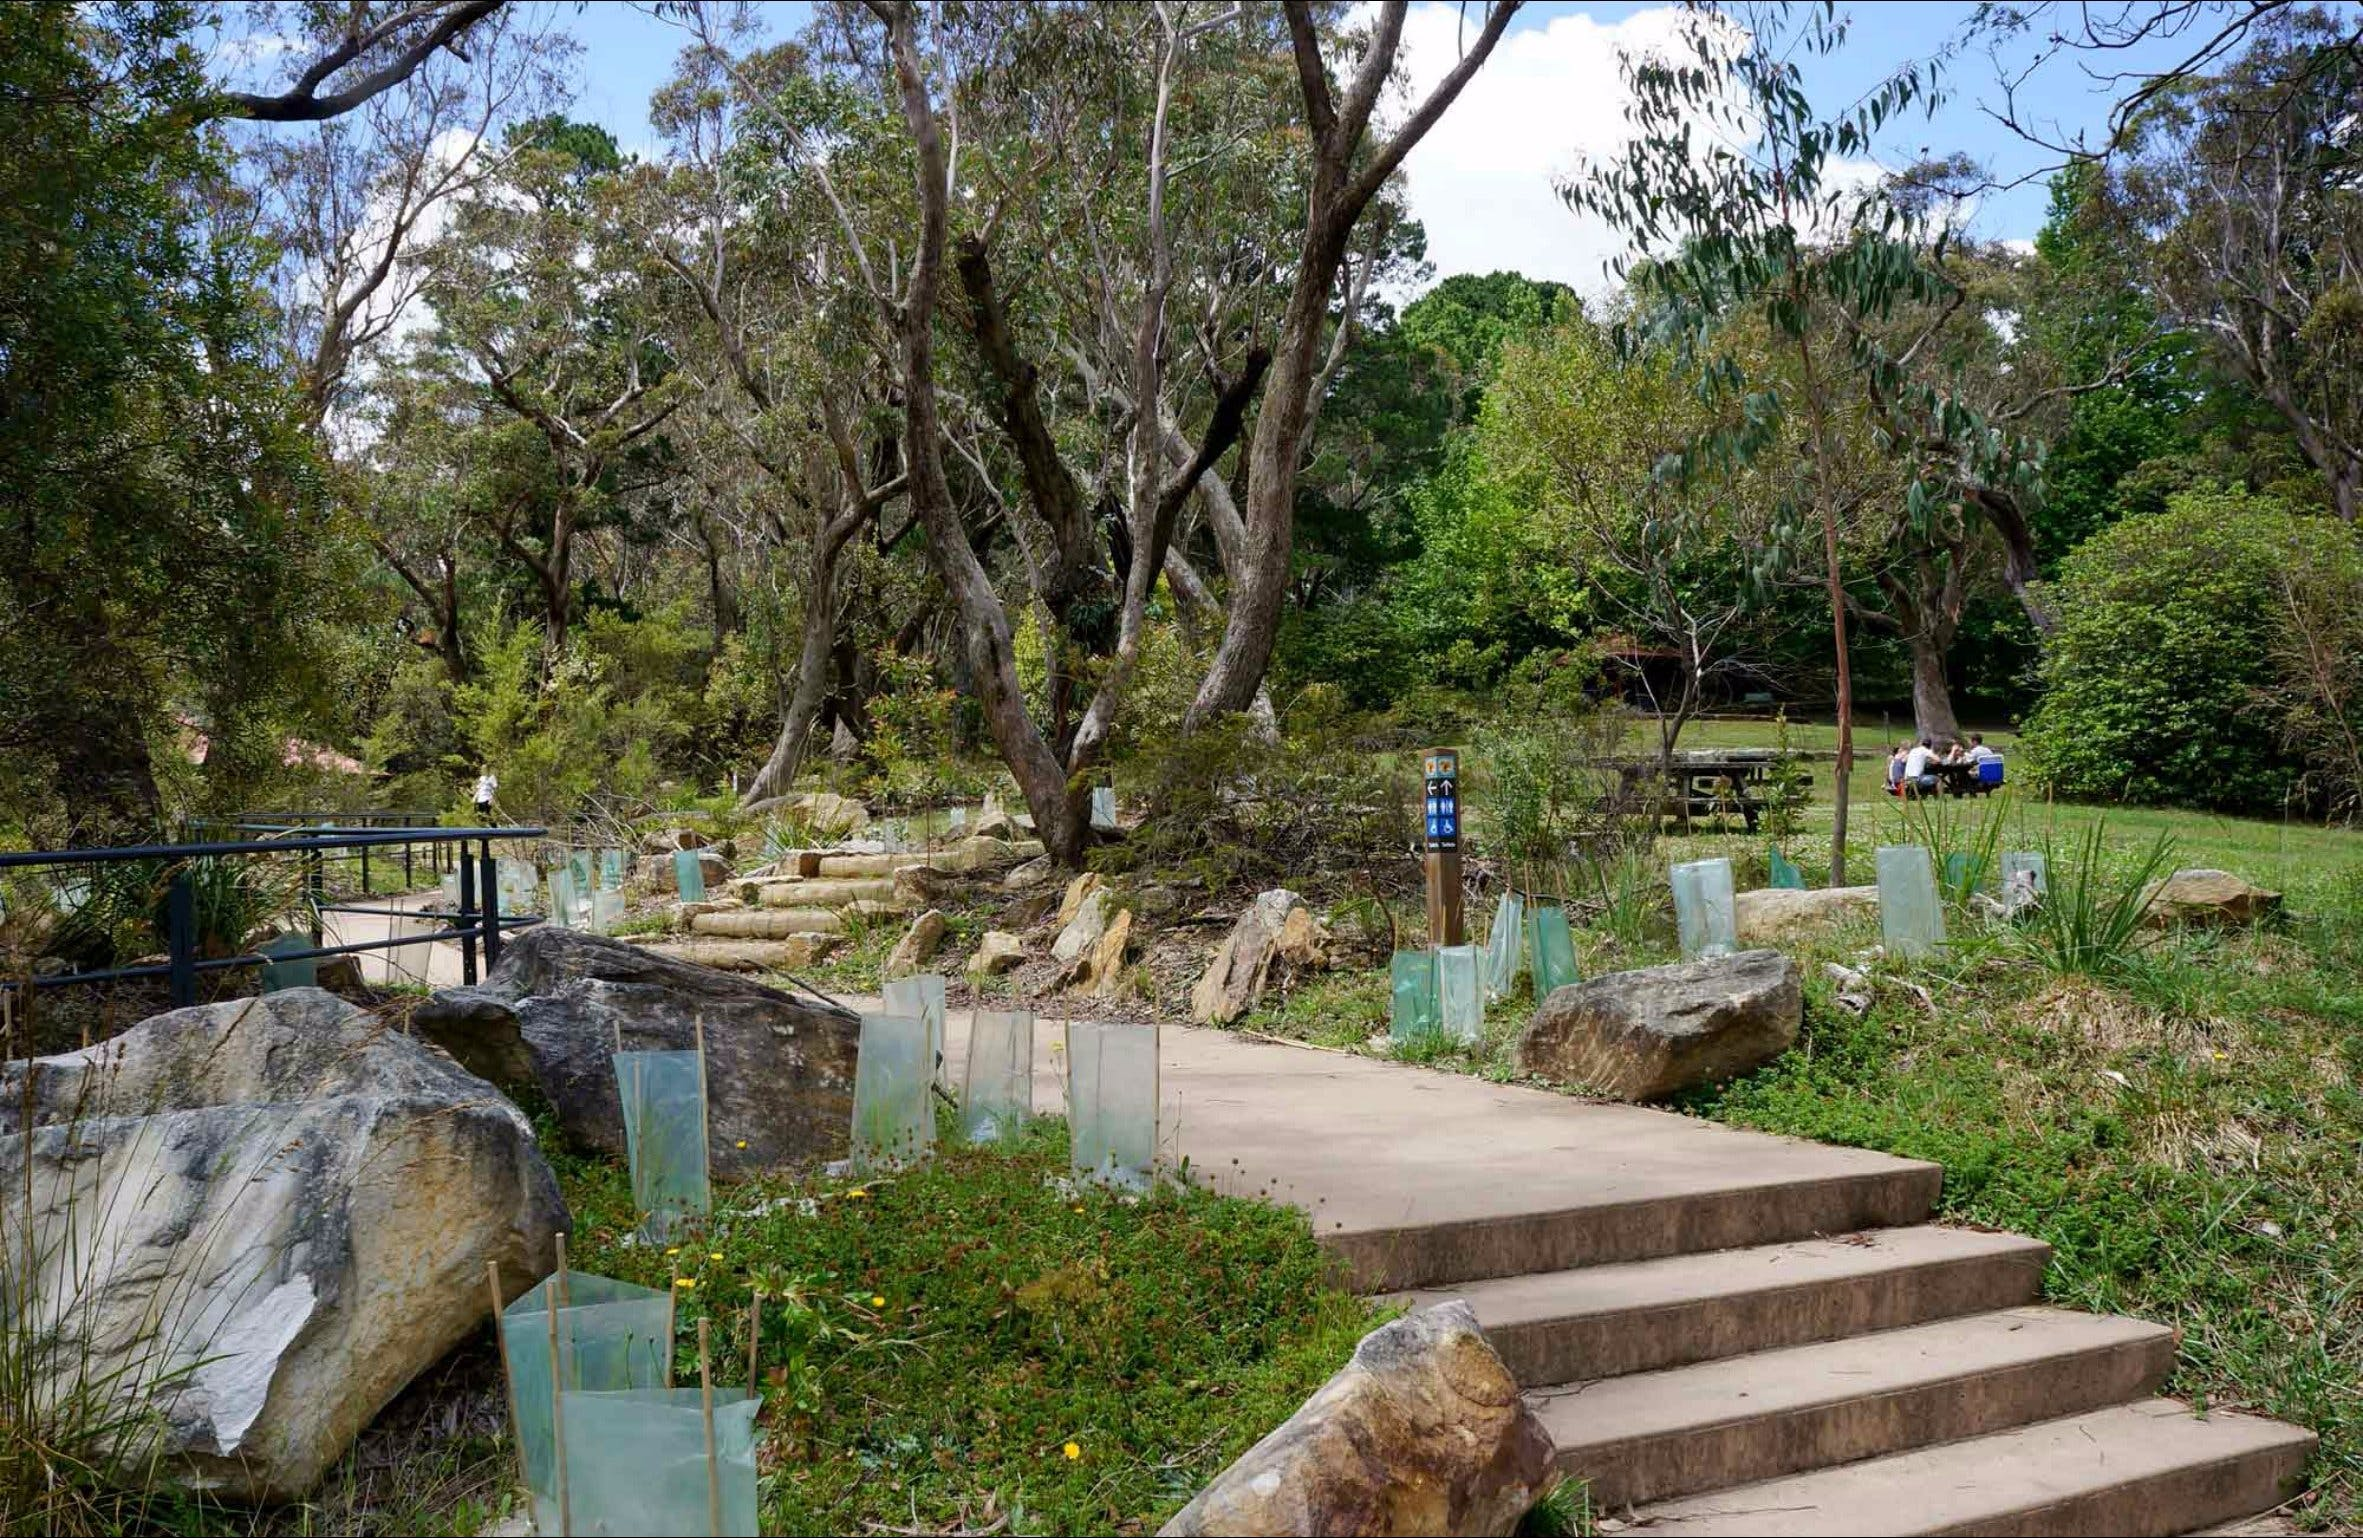 Wentworth Falls picnic area - Accommodation Search